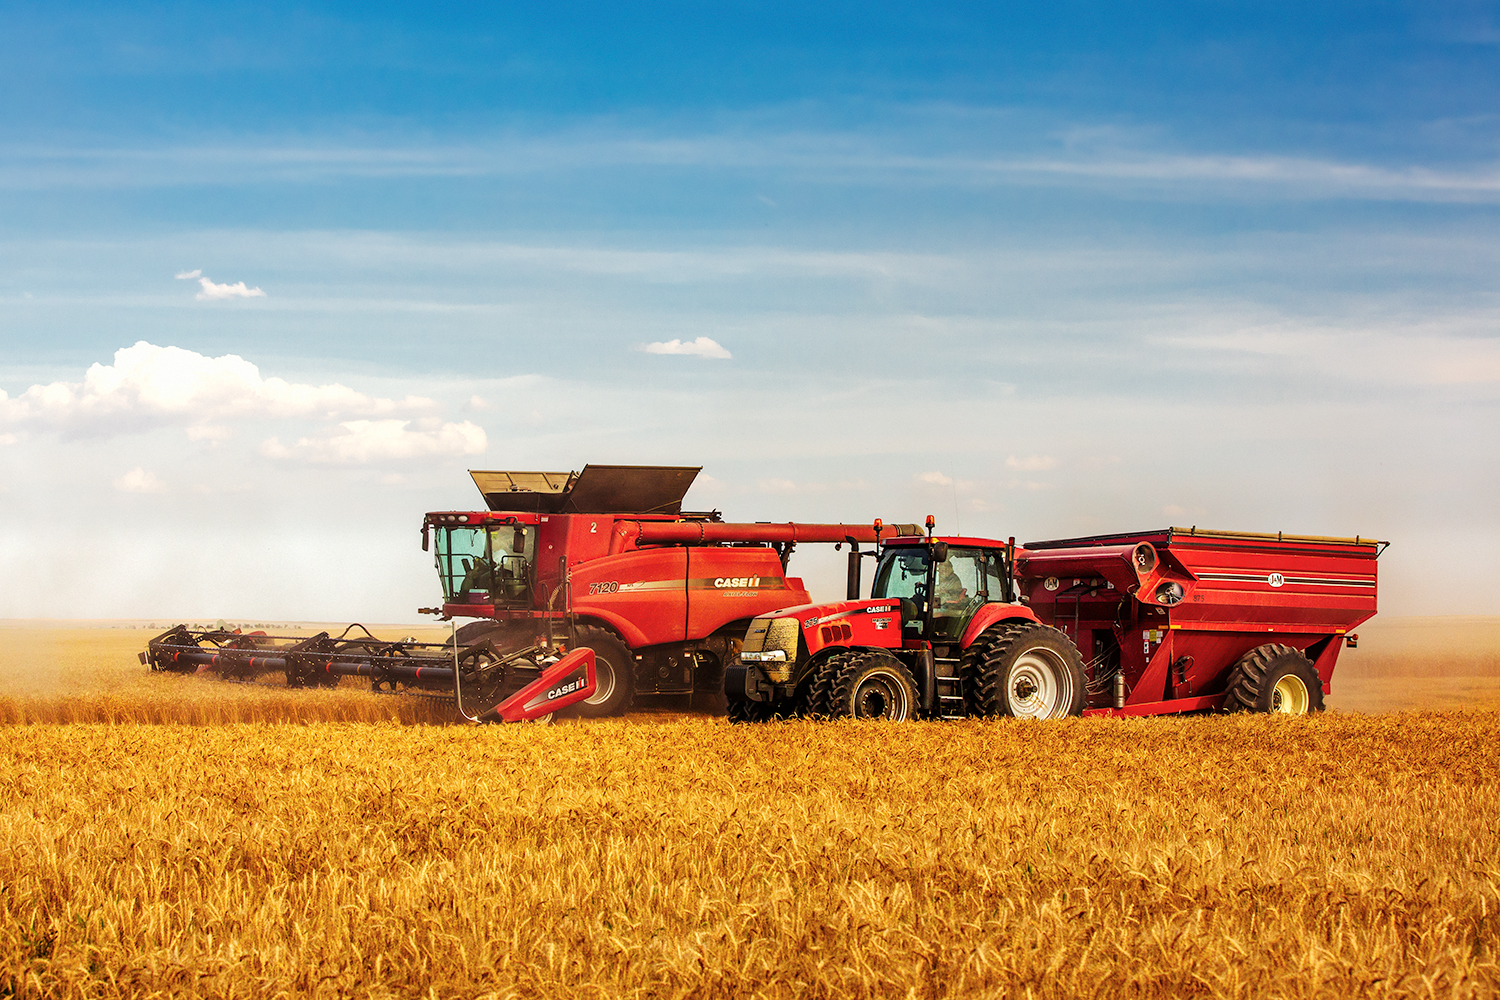 A tractor drives along side a combine while harvesting wheat in a field near Simpson, Montana.     → Buy a Print